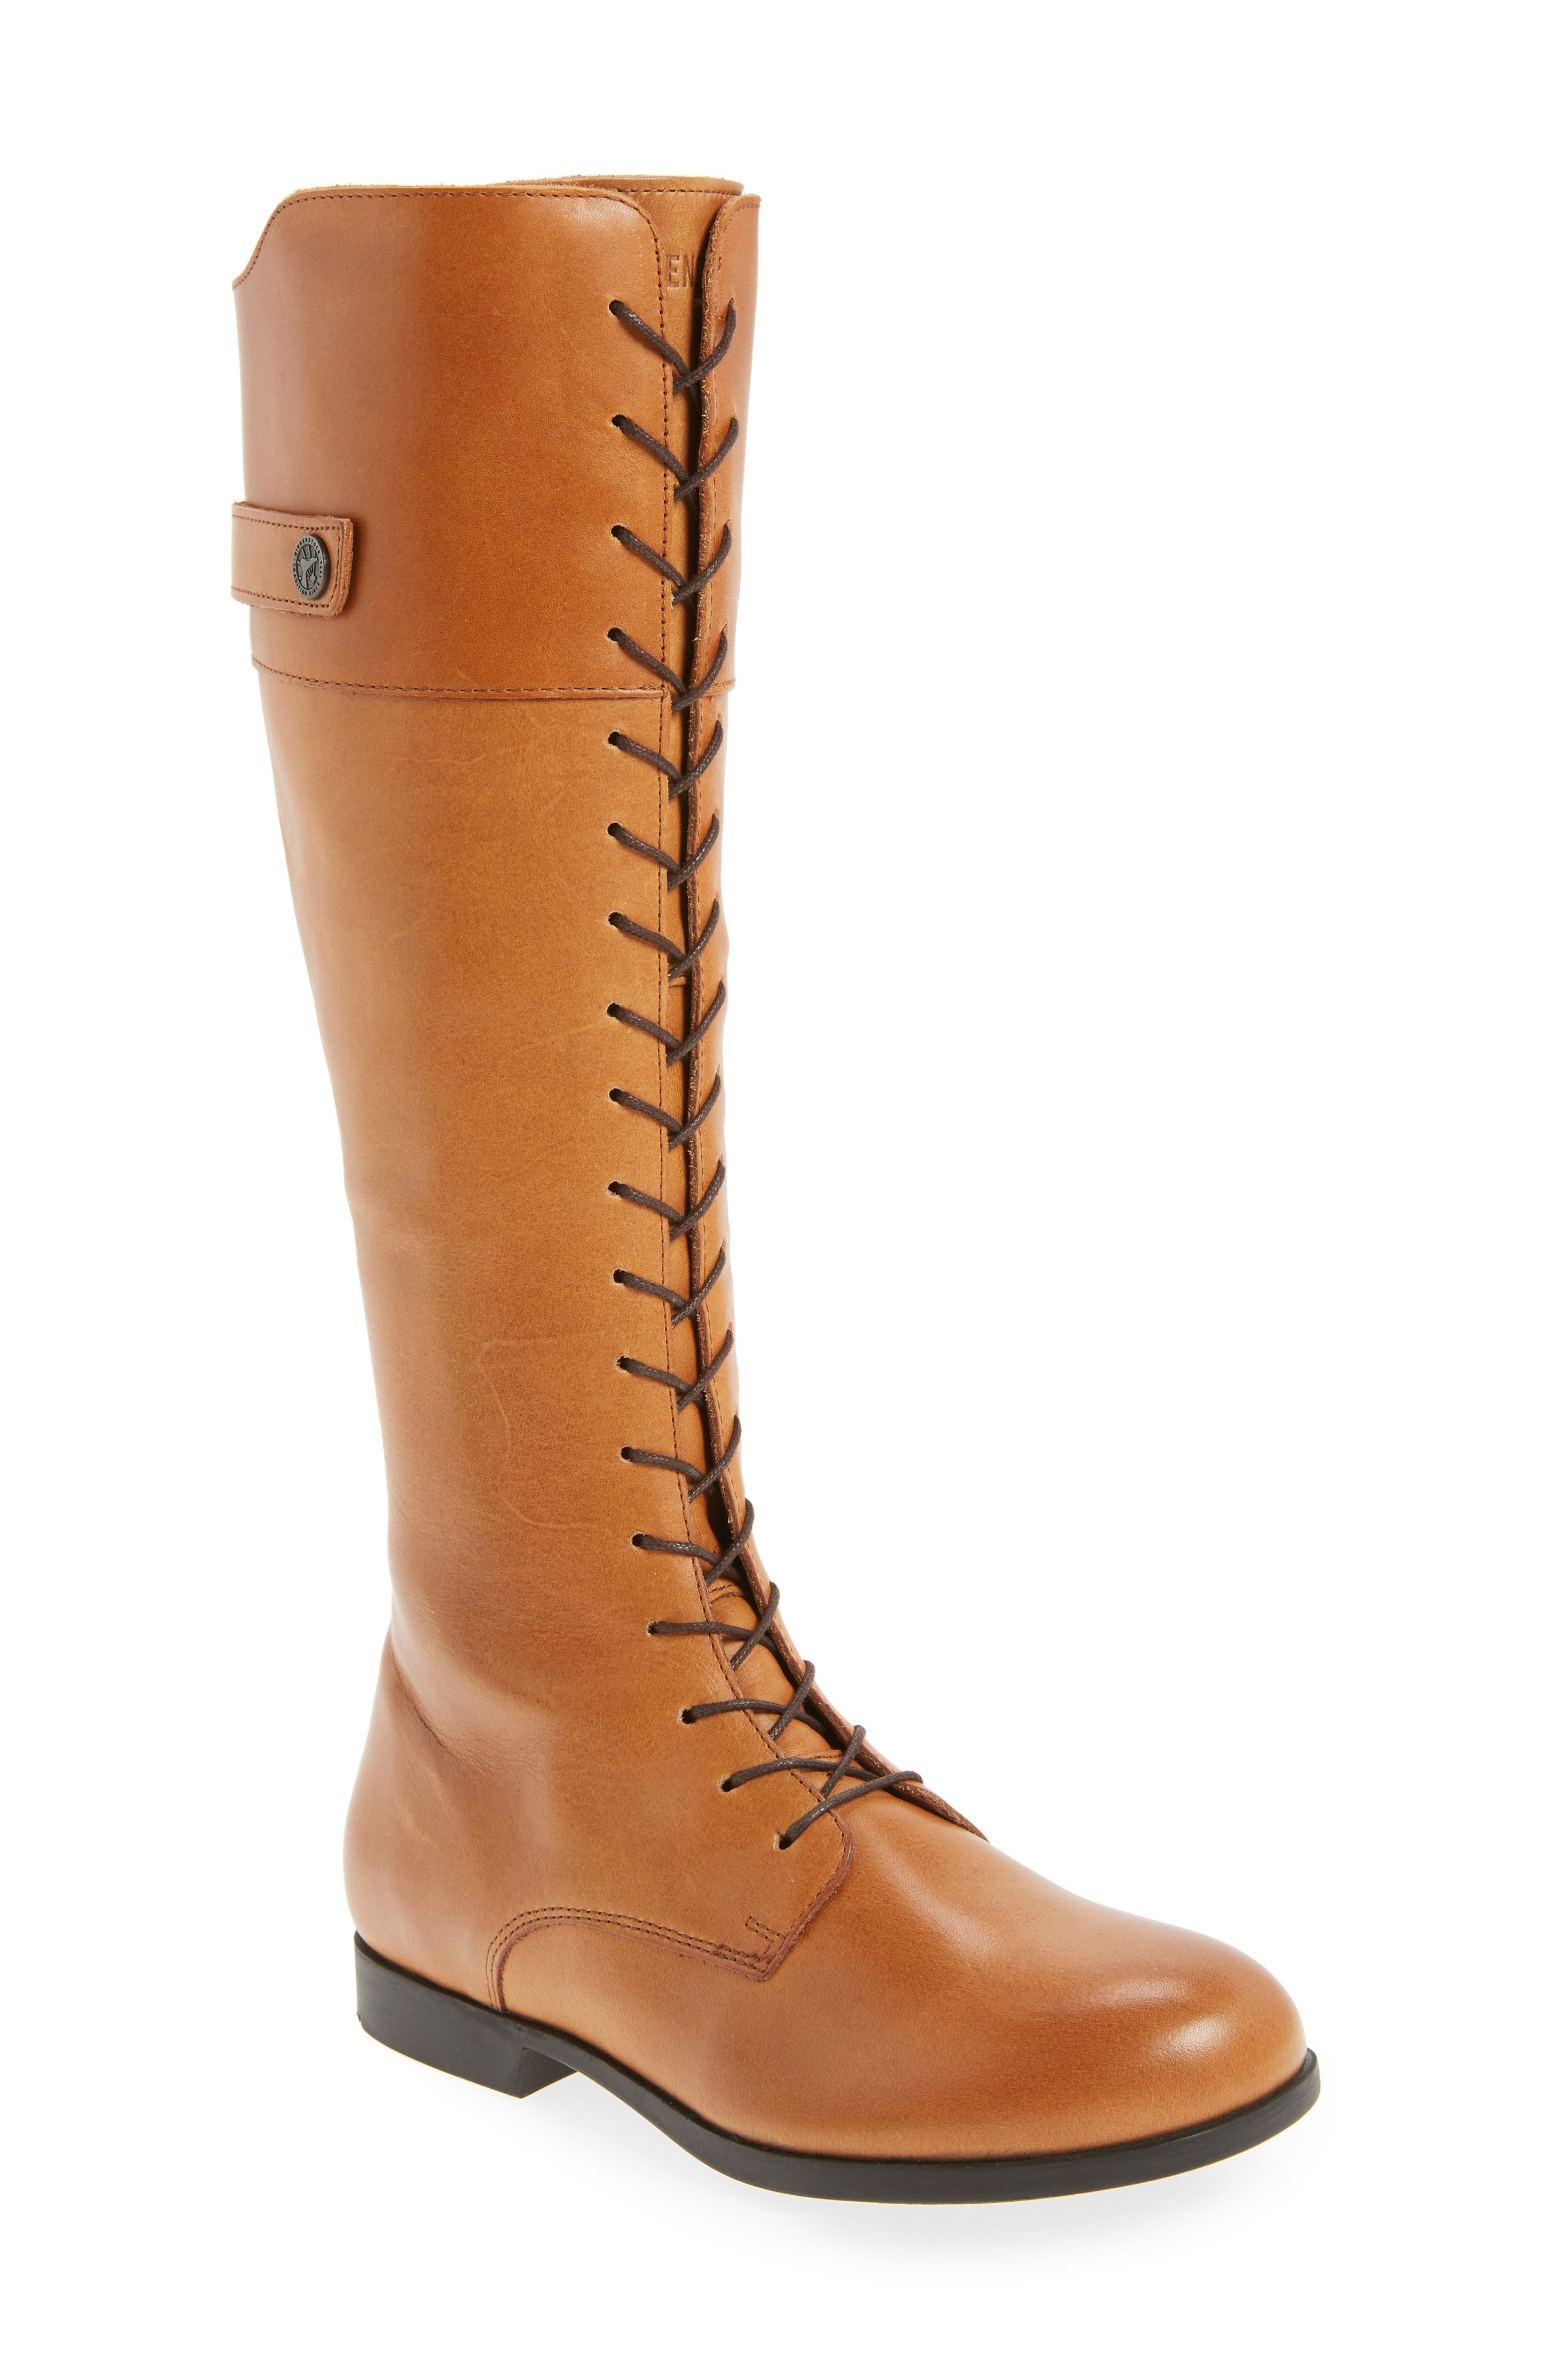 Alternate Image 1 Selected - Birkenstock Longford Knee-High Lace-Up Boot (Women)